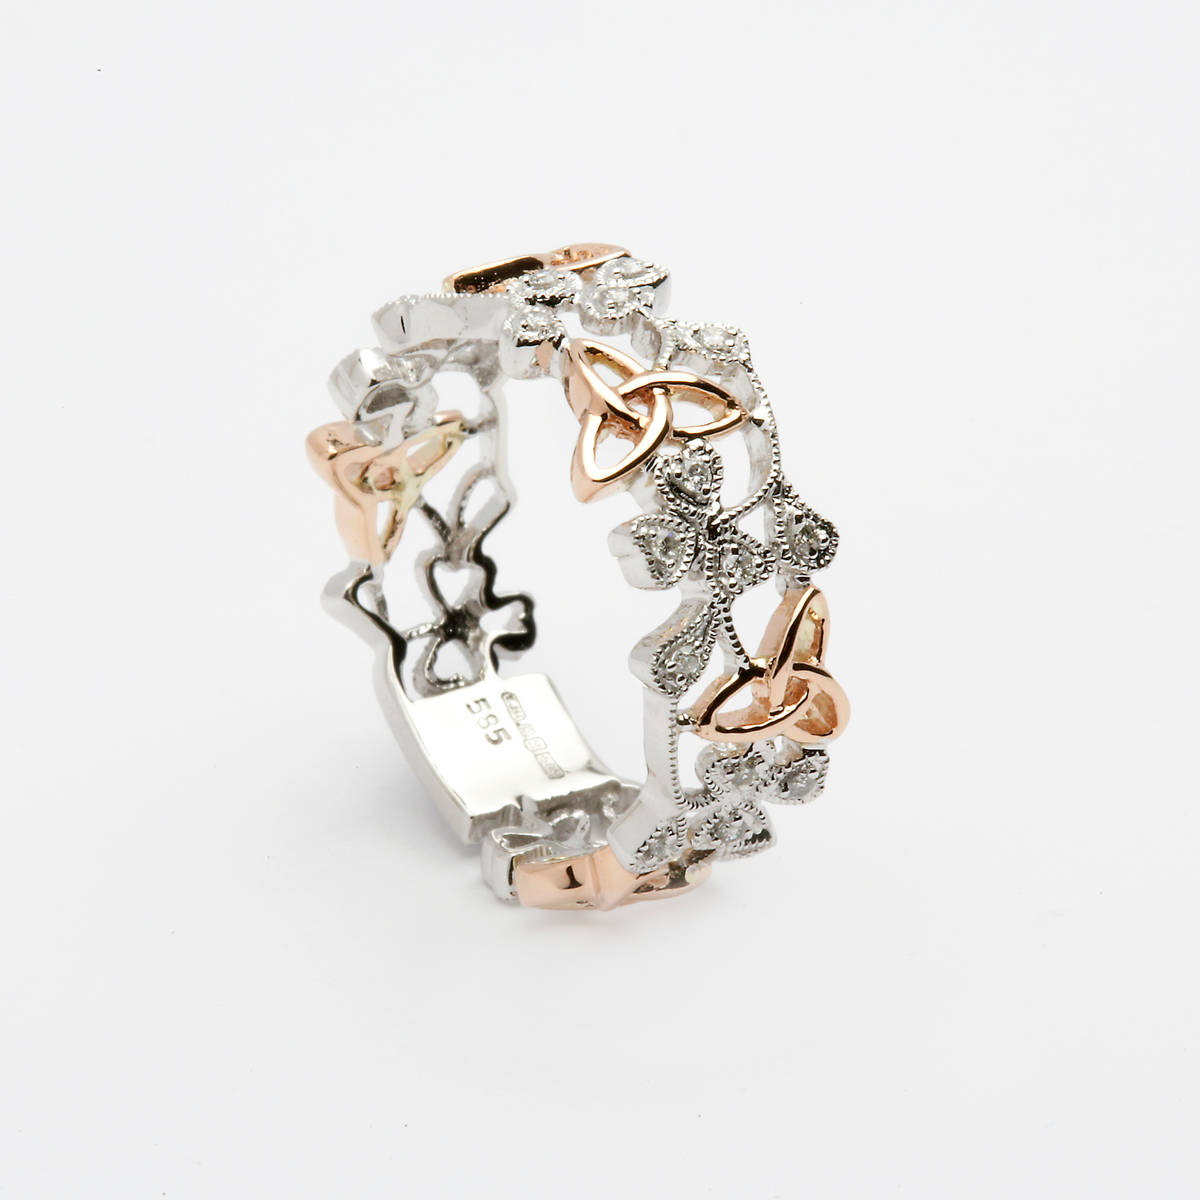 14 ct gold trinity knots ring in white gold and rose gold with 0.13 cts diamonds